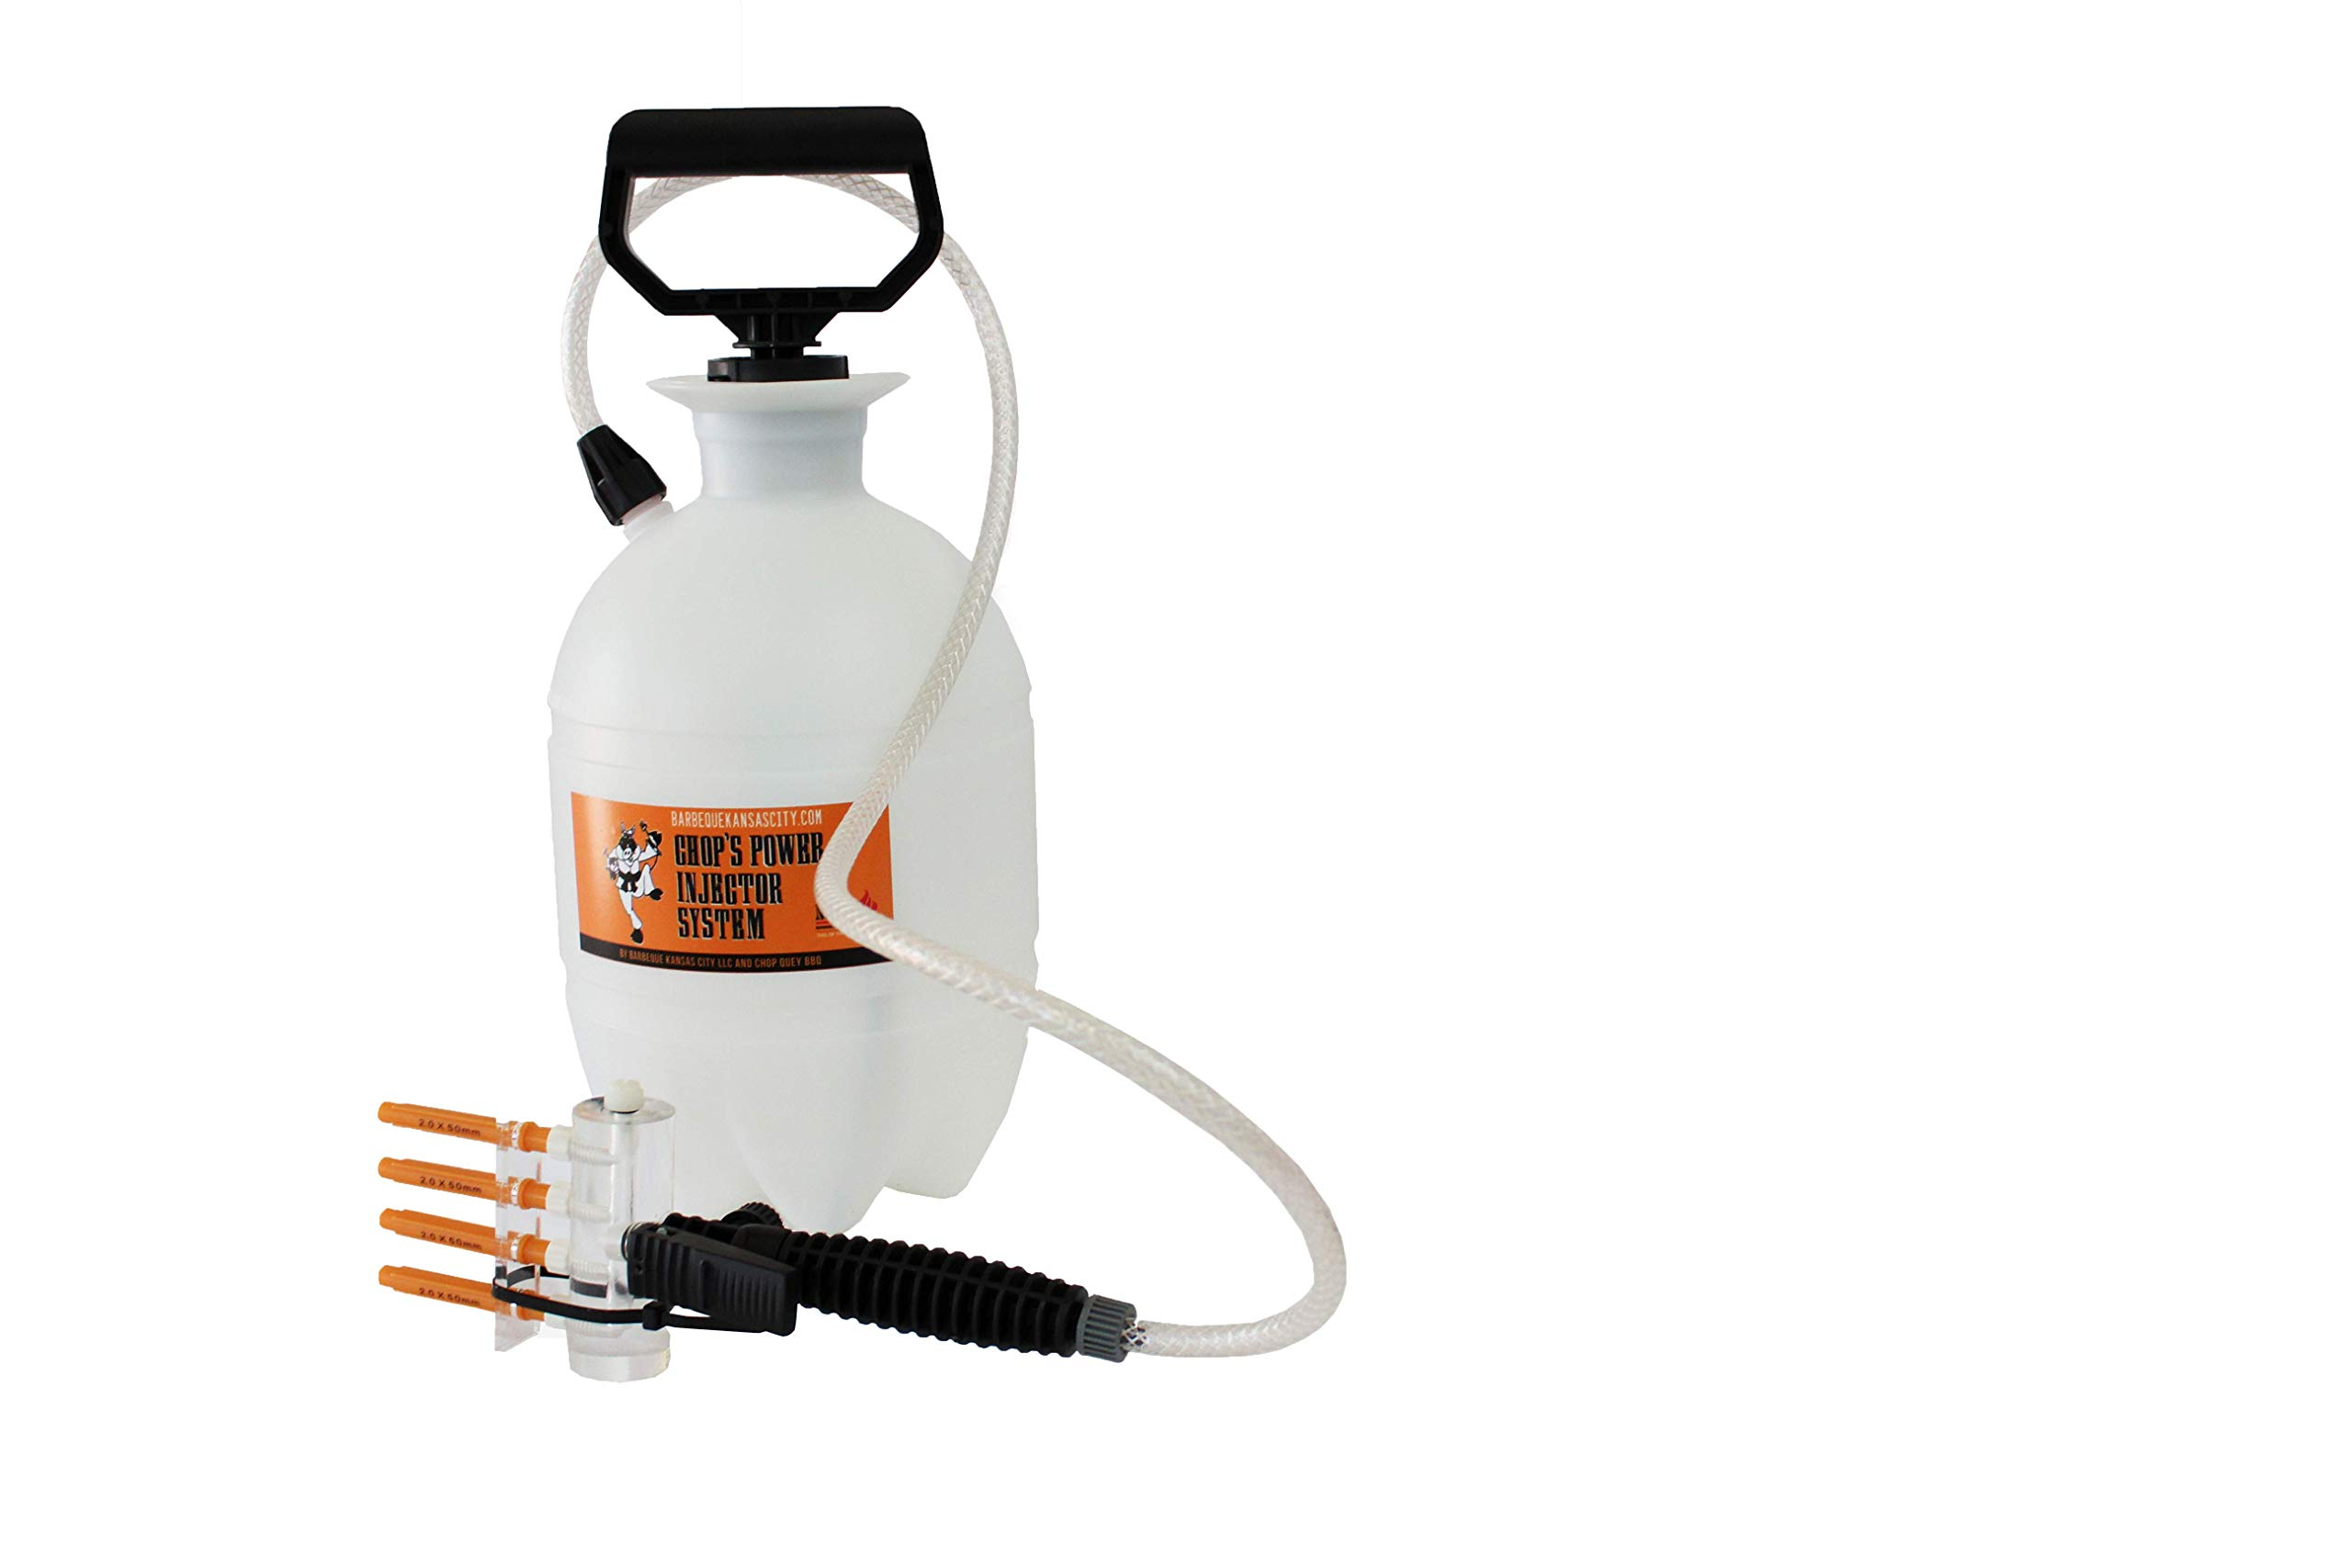 Chop's Power Injector System 1 Gallon by Barbeque Kansas City LLC